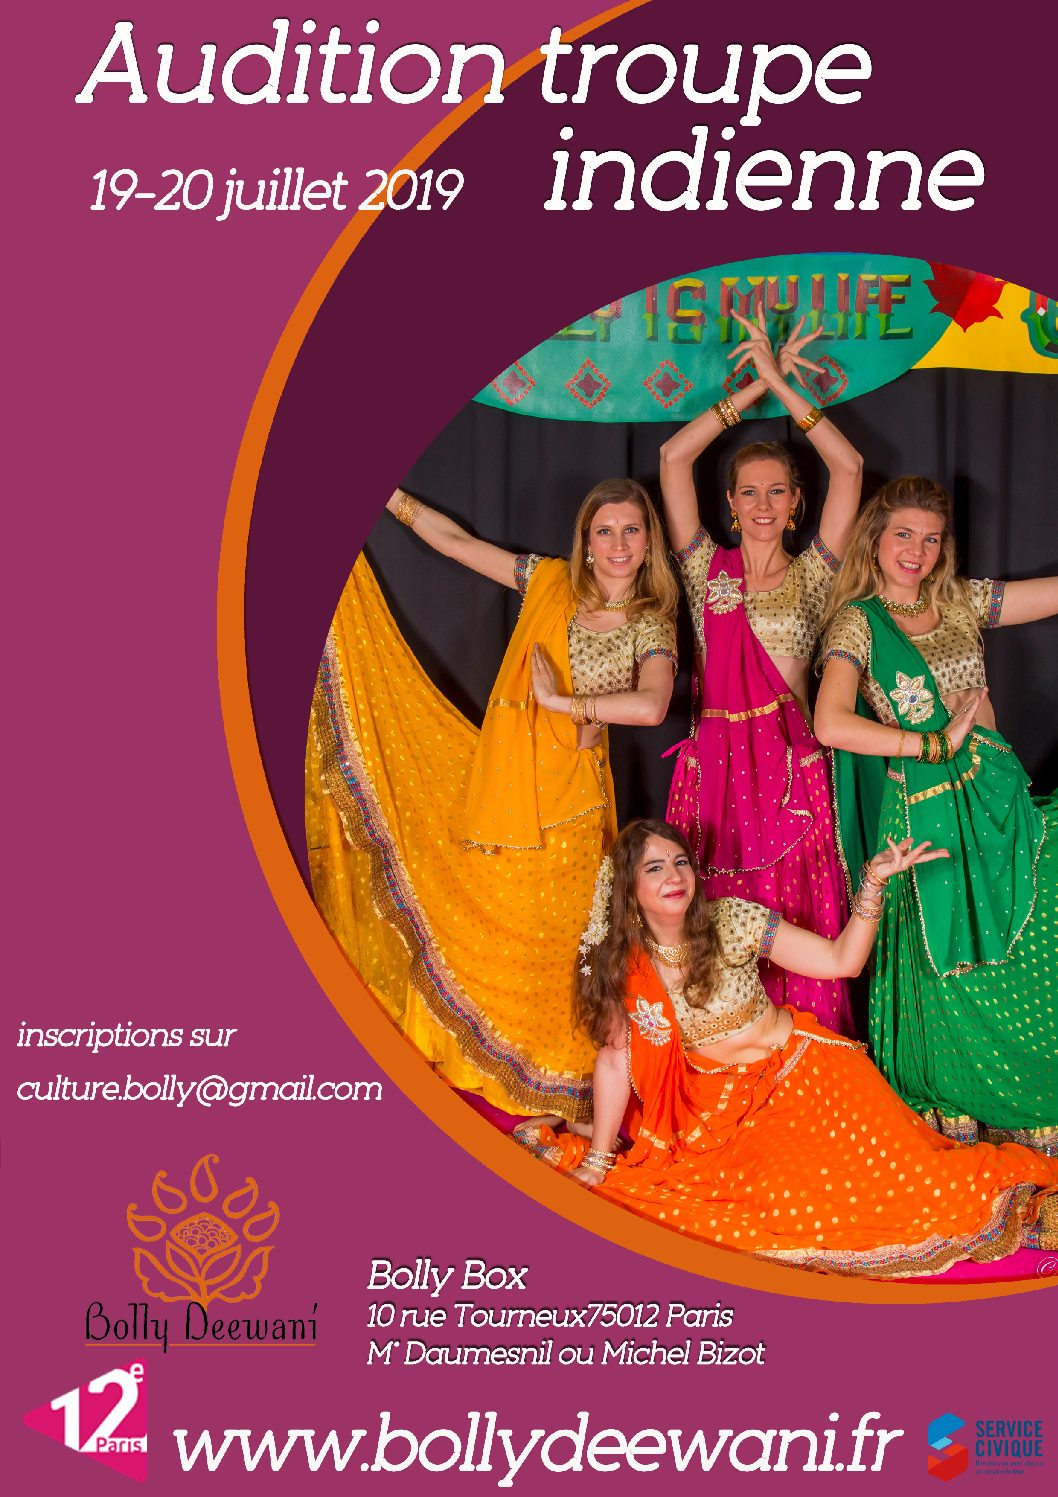 AUDITION TROUPE INDIENNE